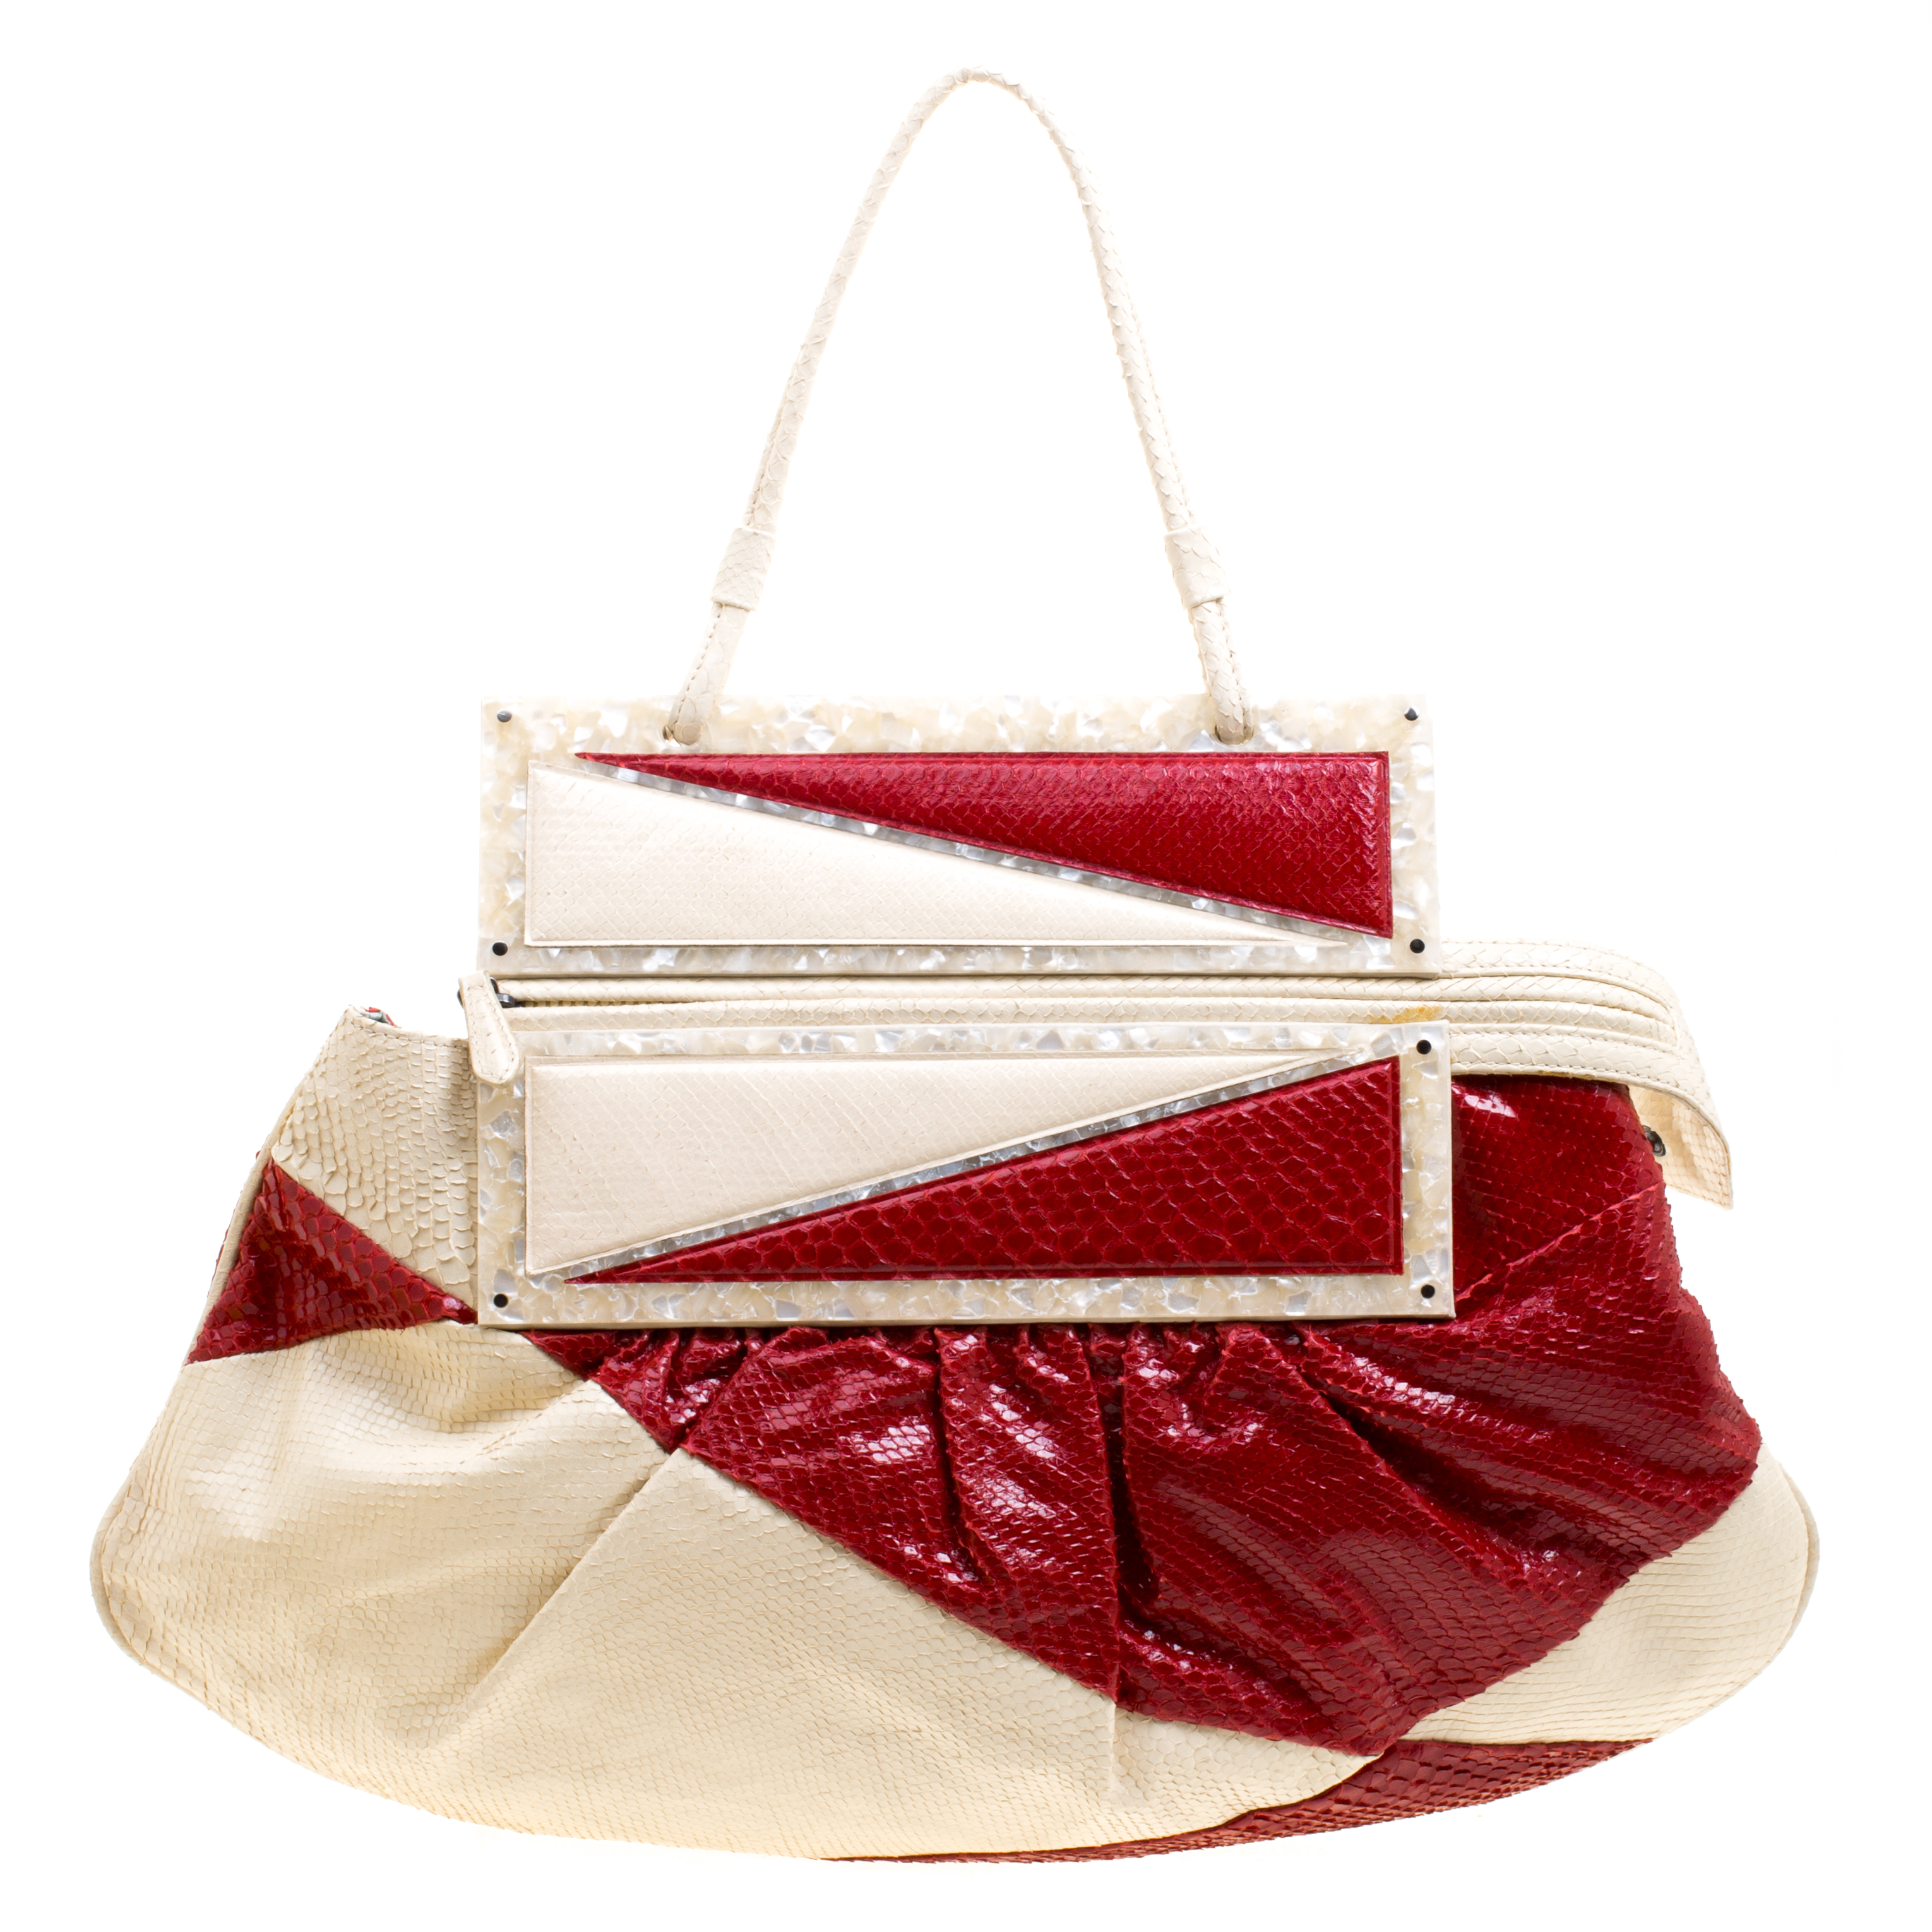 34380198d15c Buy Fendi Off White Red Python To You Convertible Clutch Bag 118269 ...